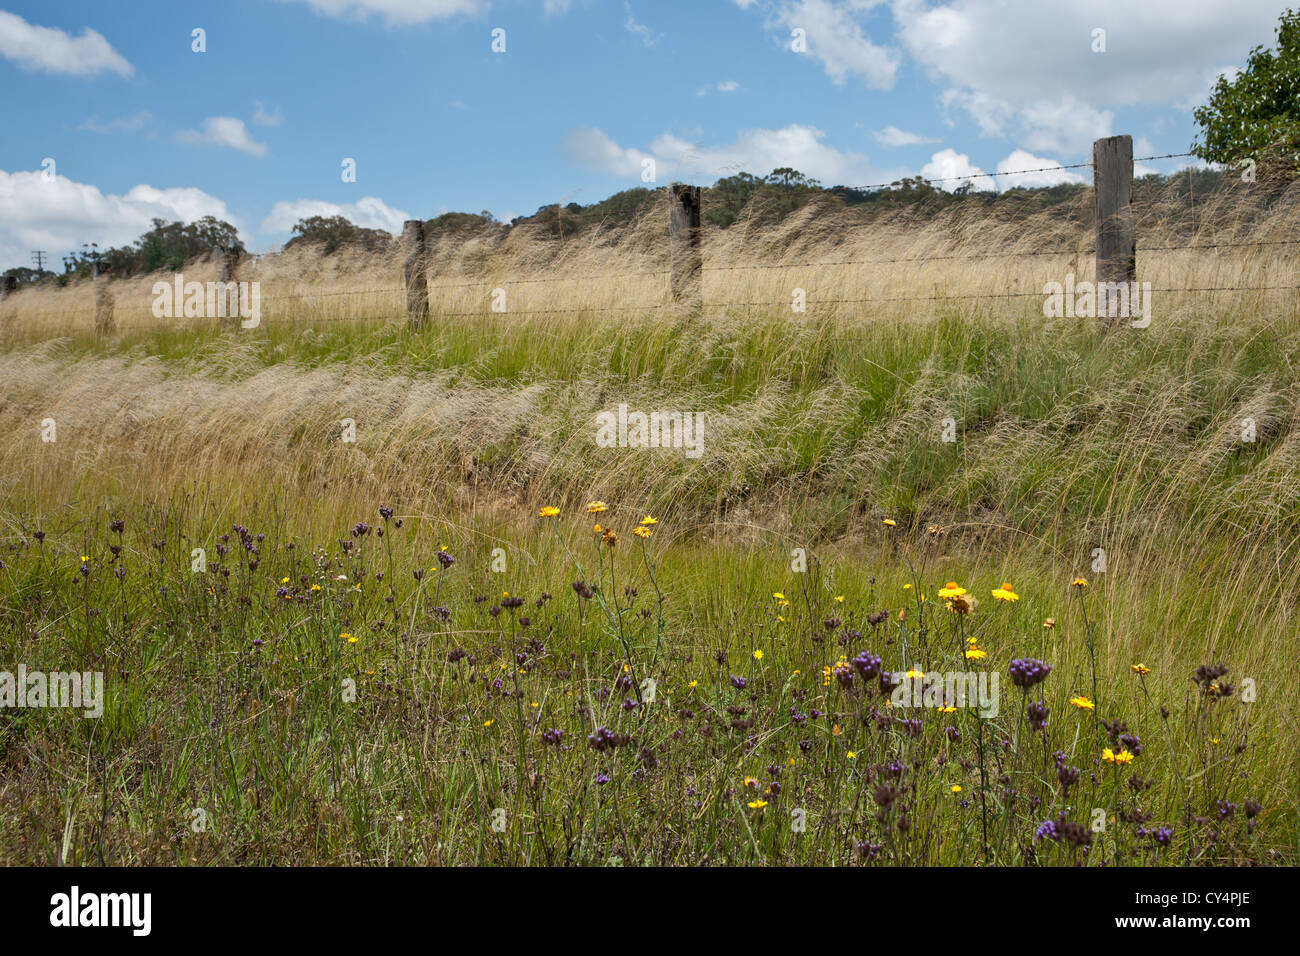 Rural scene, fence and grass blowing wind. - Stock Image